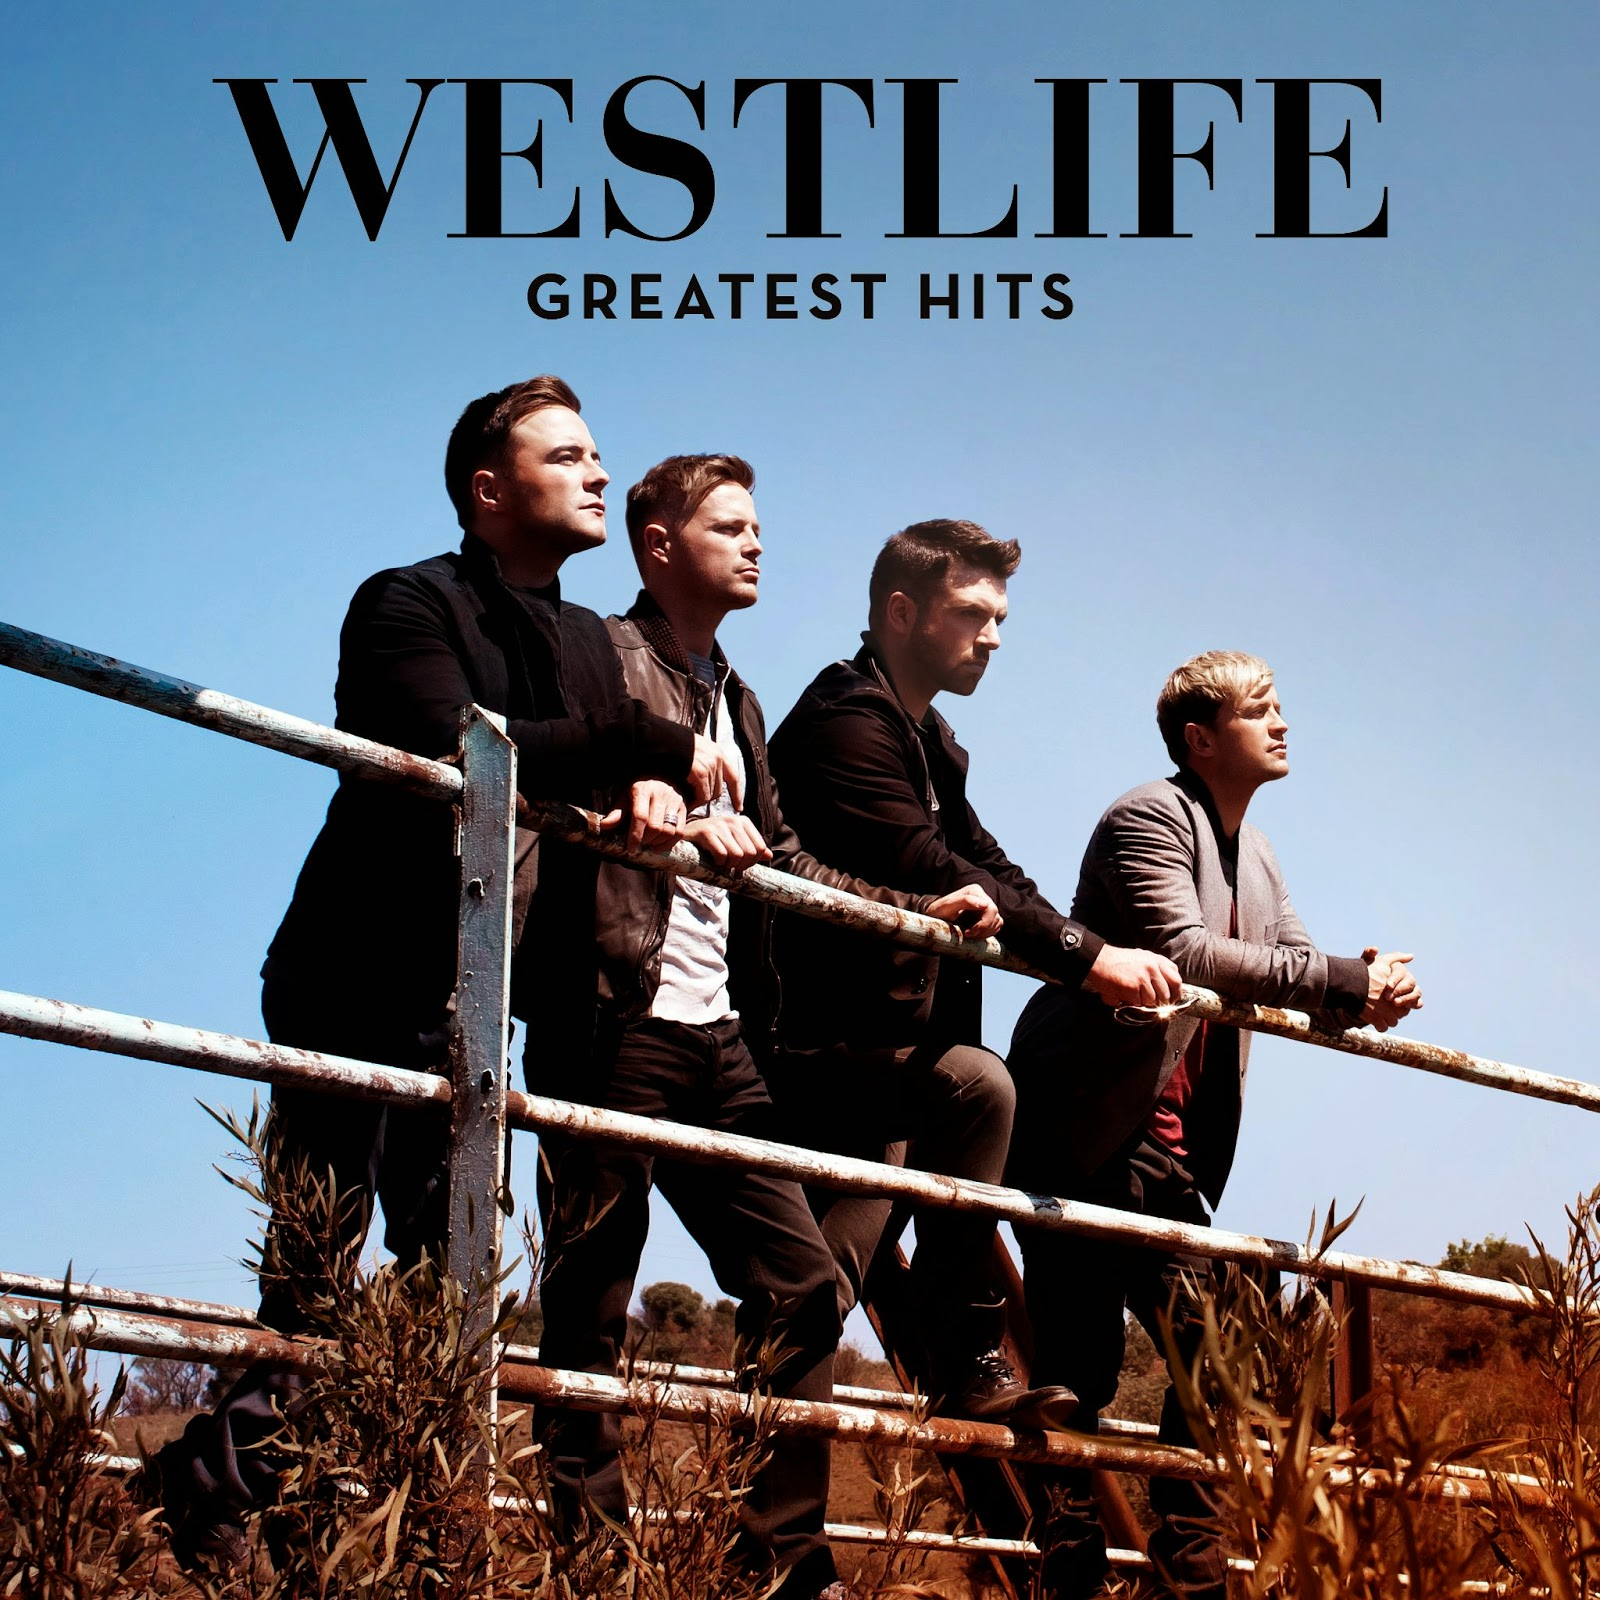 Westlife – When You Tell Me That You Love Me